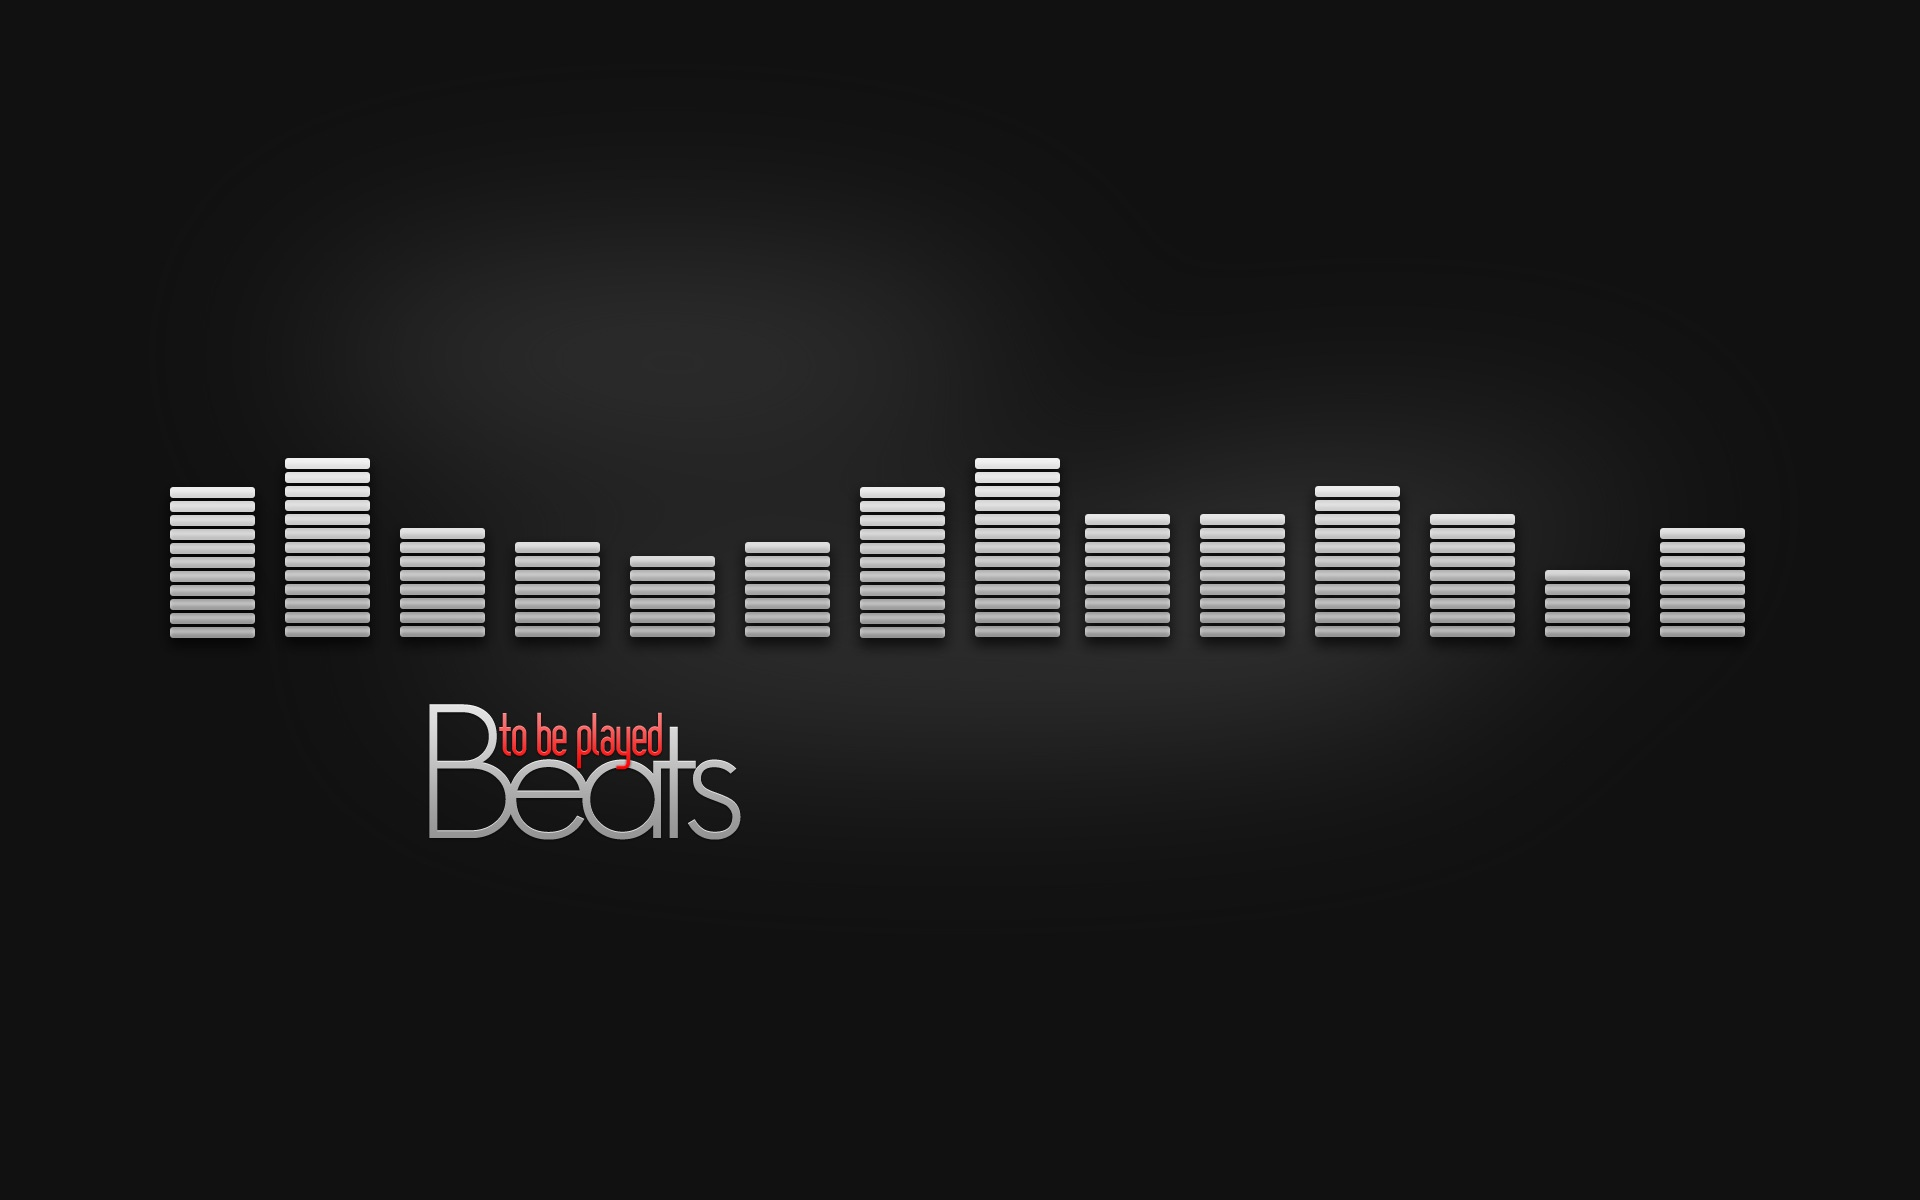 Music radio house music beats club wallpaper 1920x1200 for House music beats